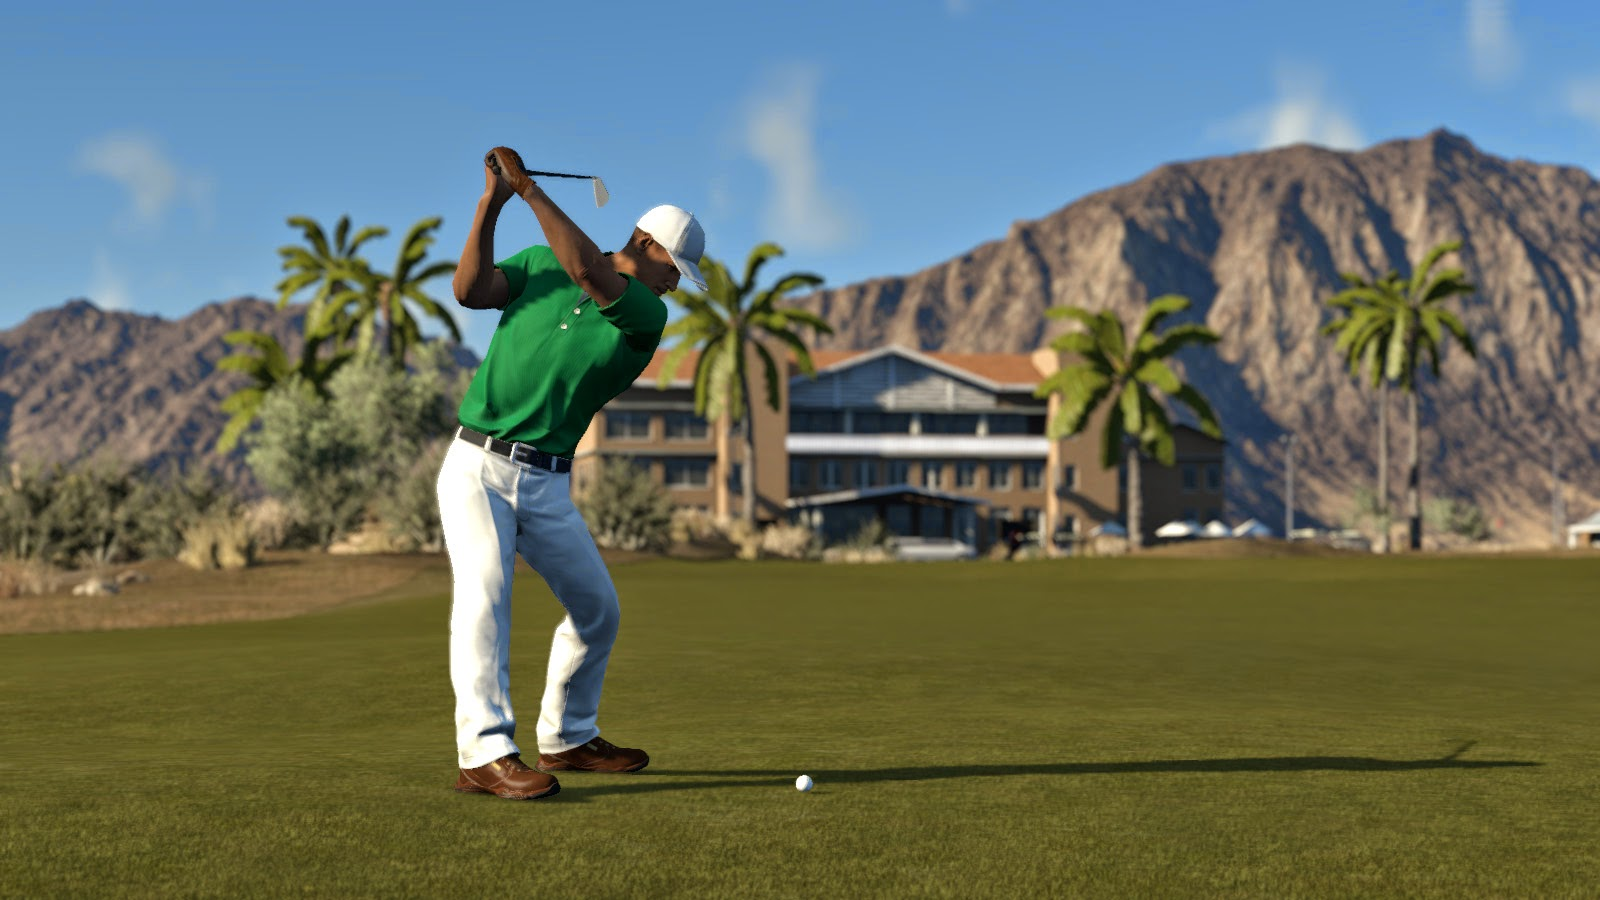 The Golf Club PC Golf Simulation